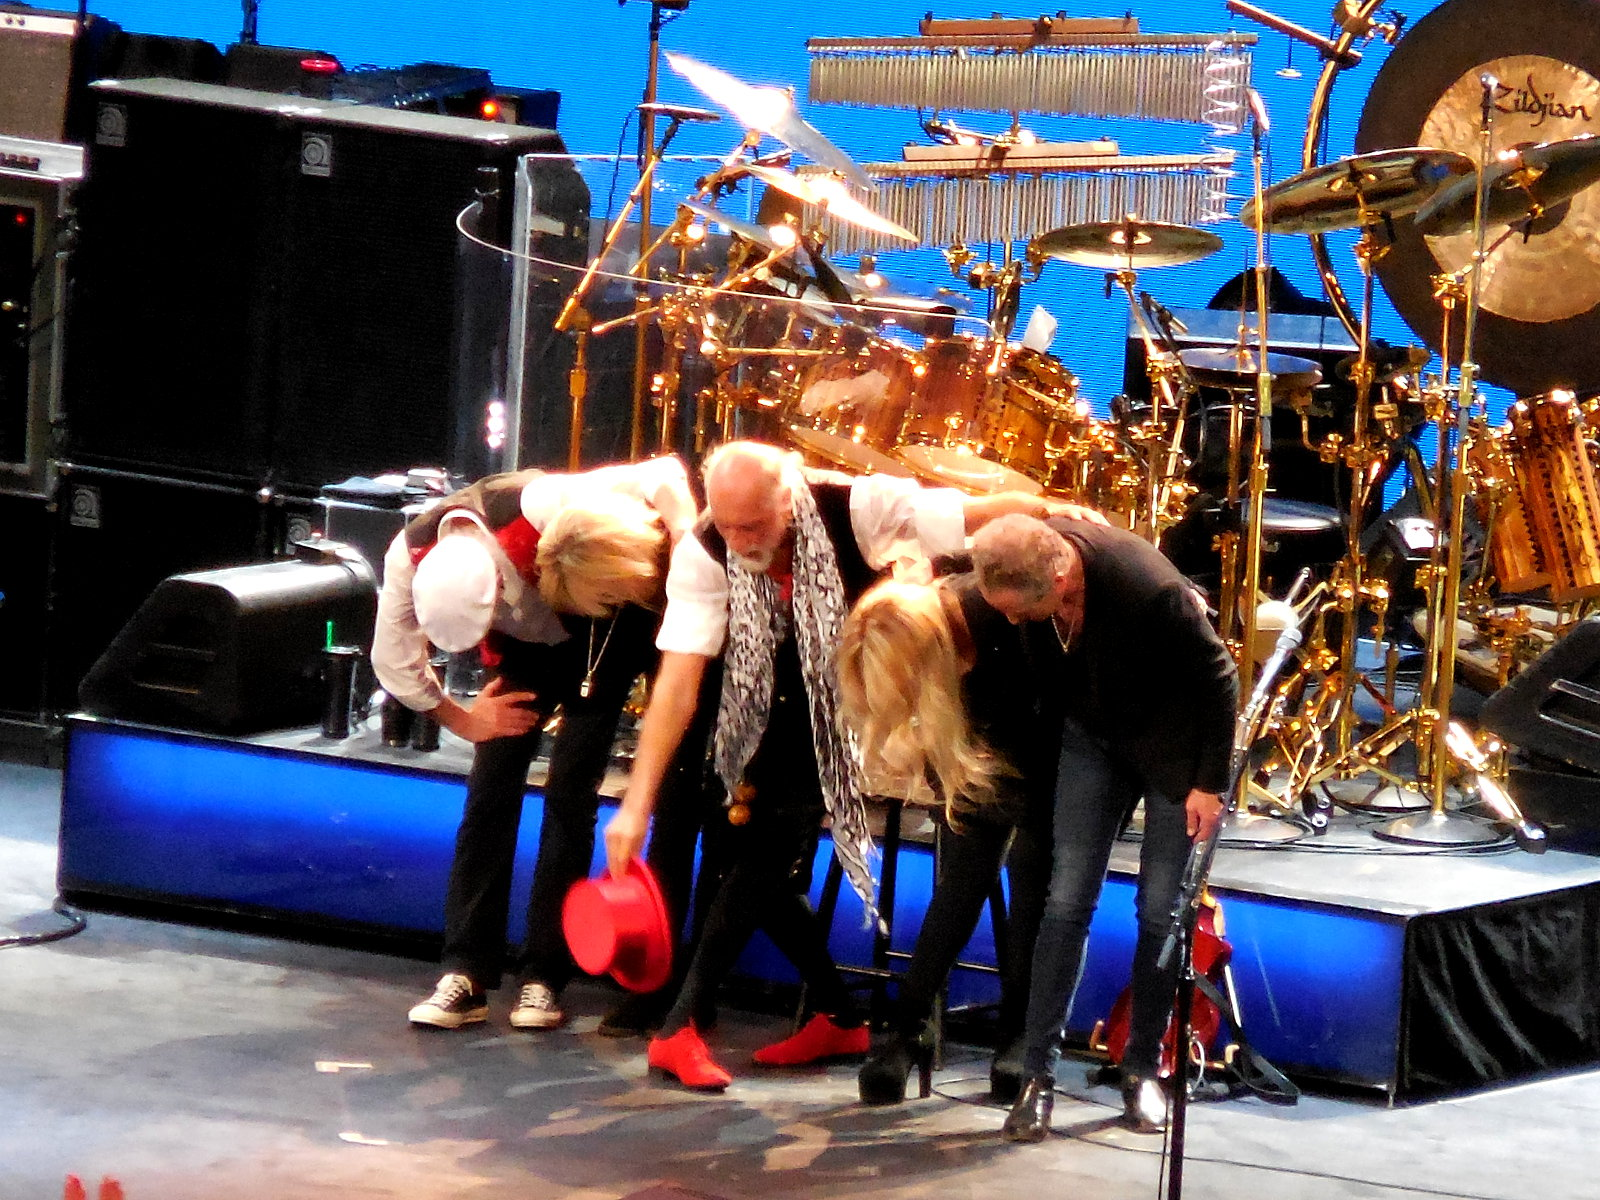 Image of Fleetwood Mac band taking bow ©K. R. Smith 2015